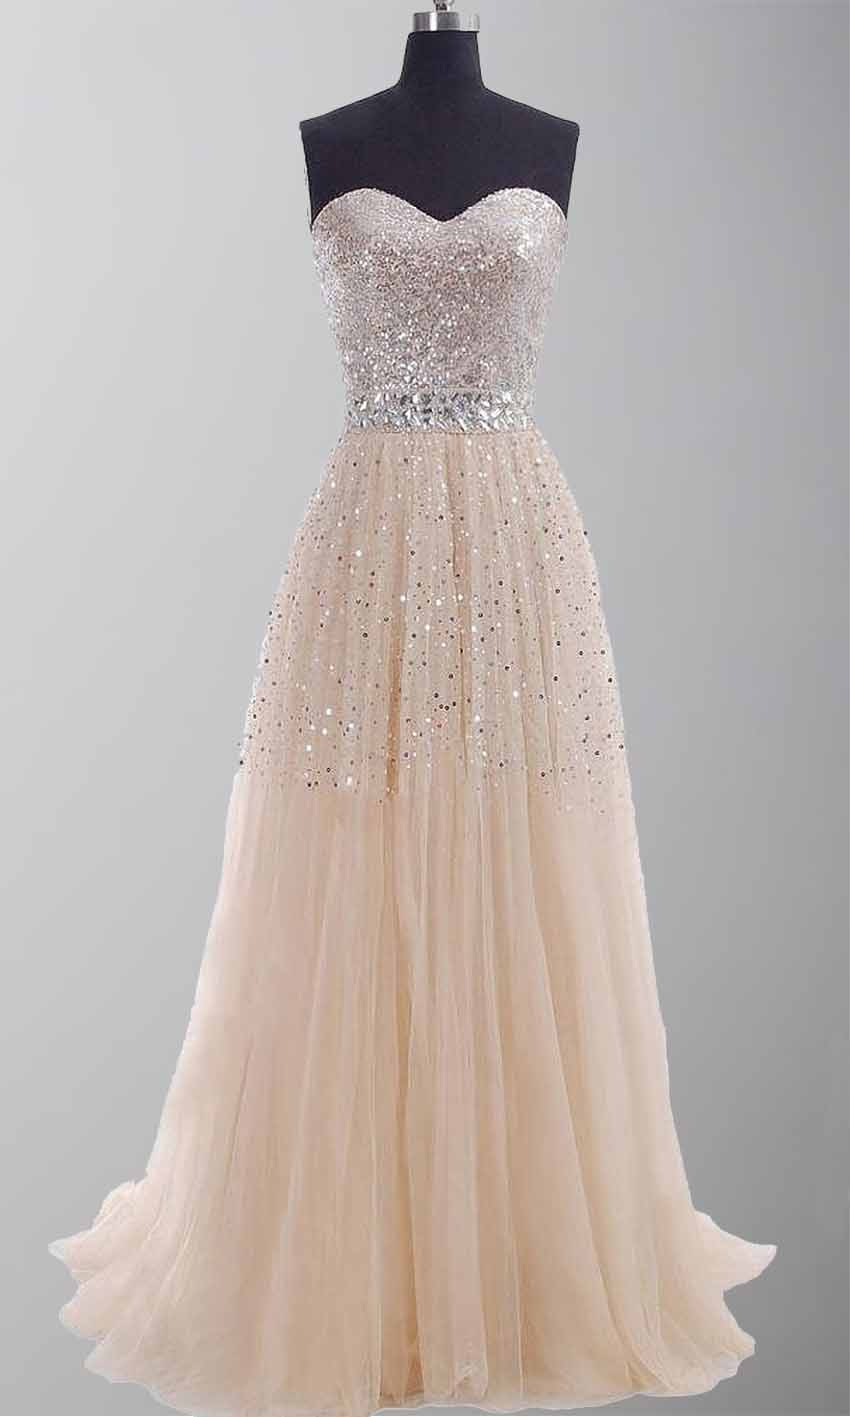 Champagne sequin sweetheart long prom gowns ksp254 ksp254 for Budget wedding dresses uk